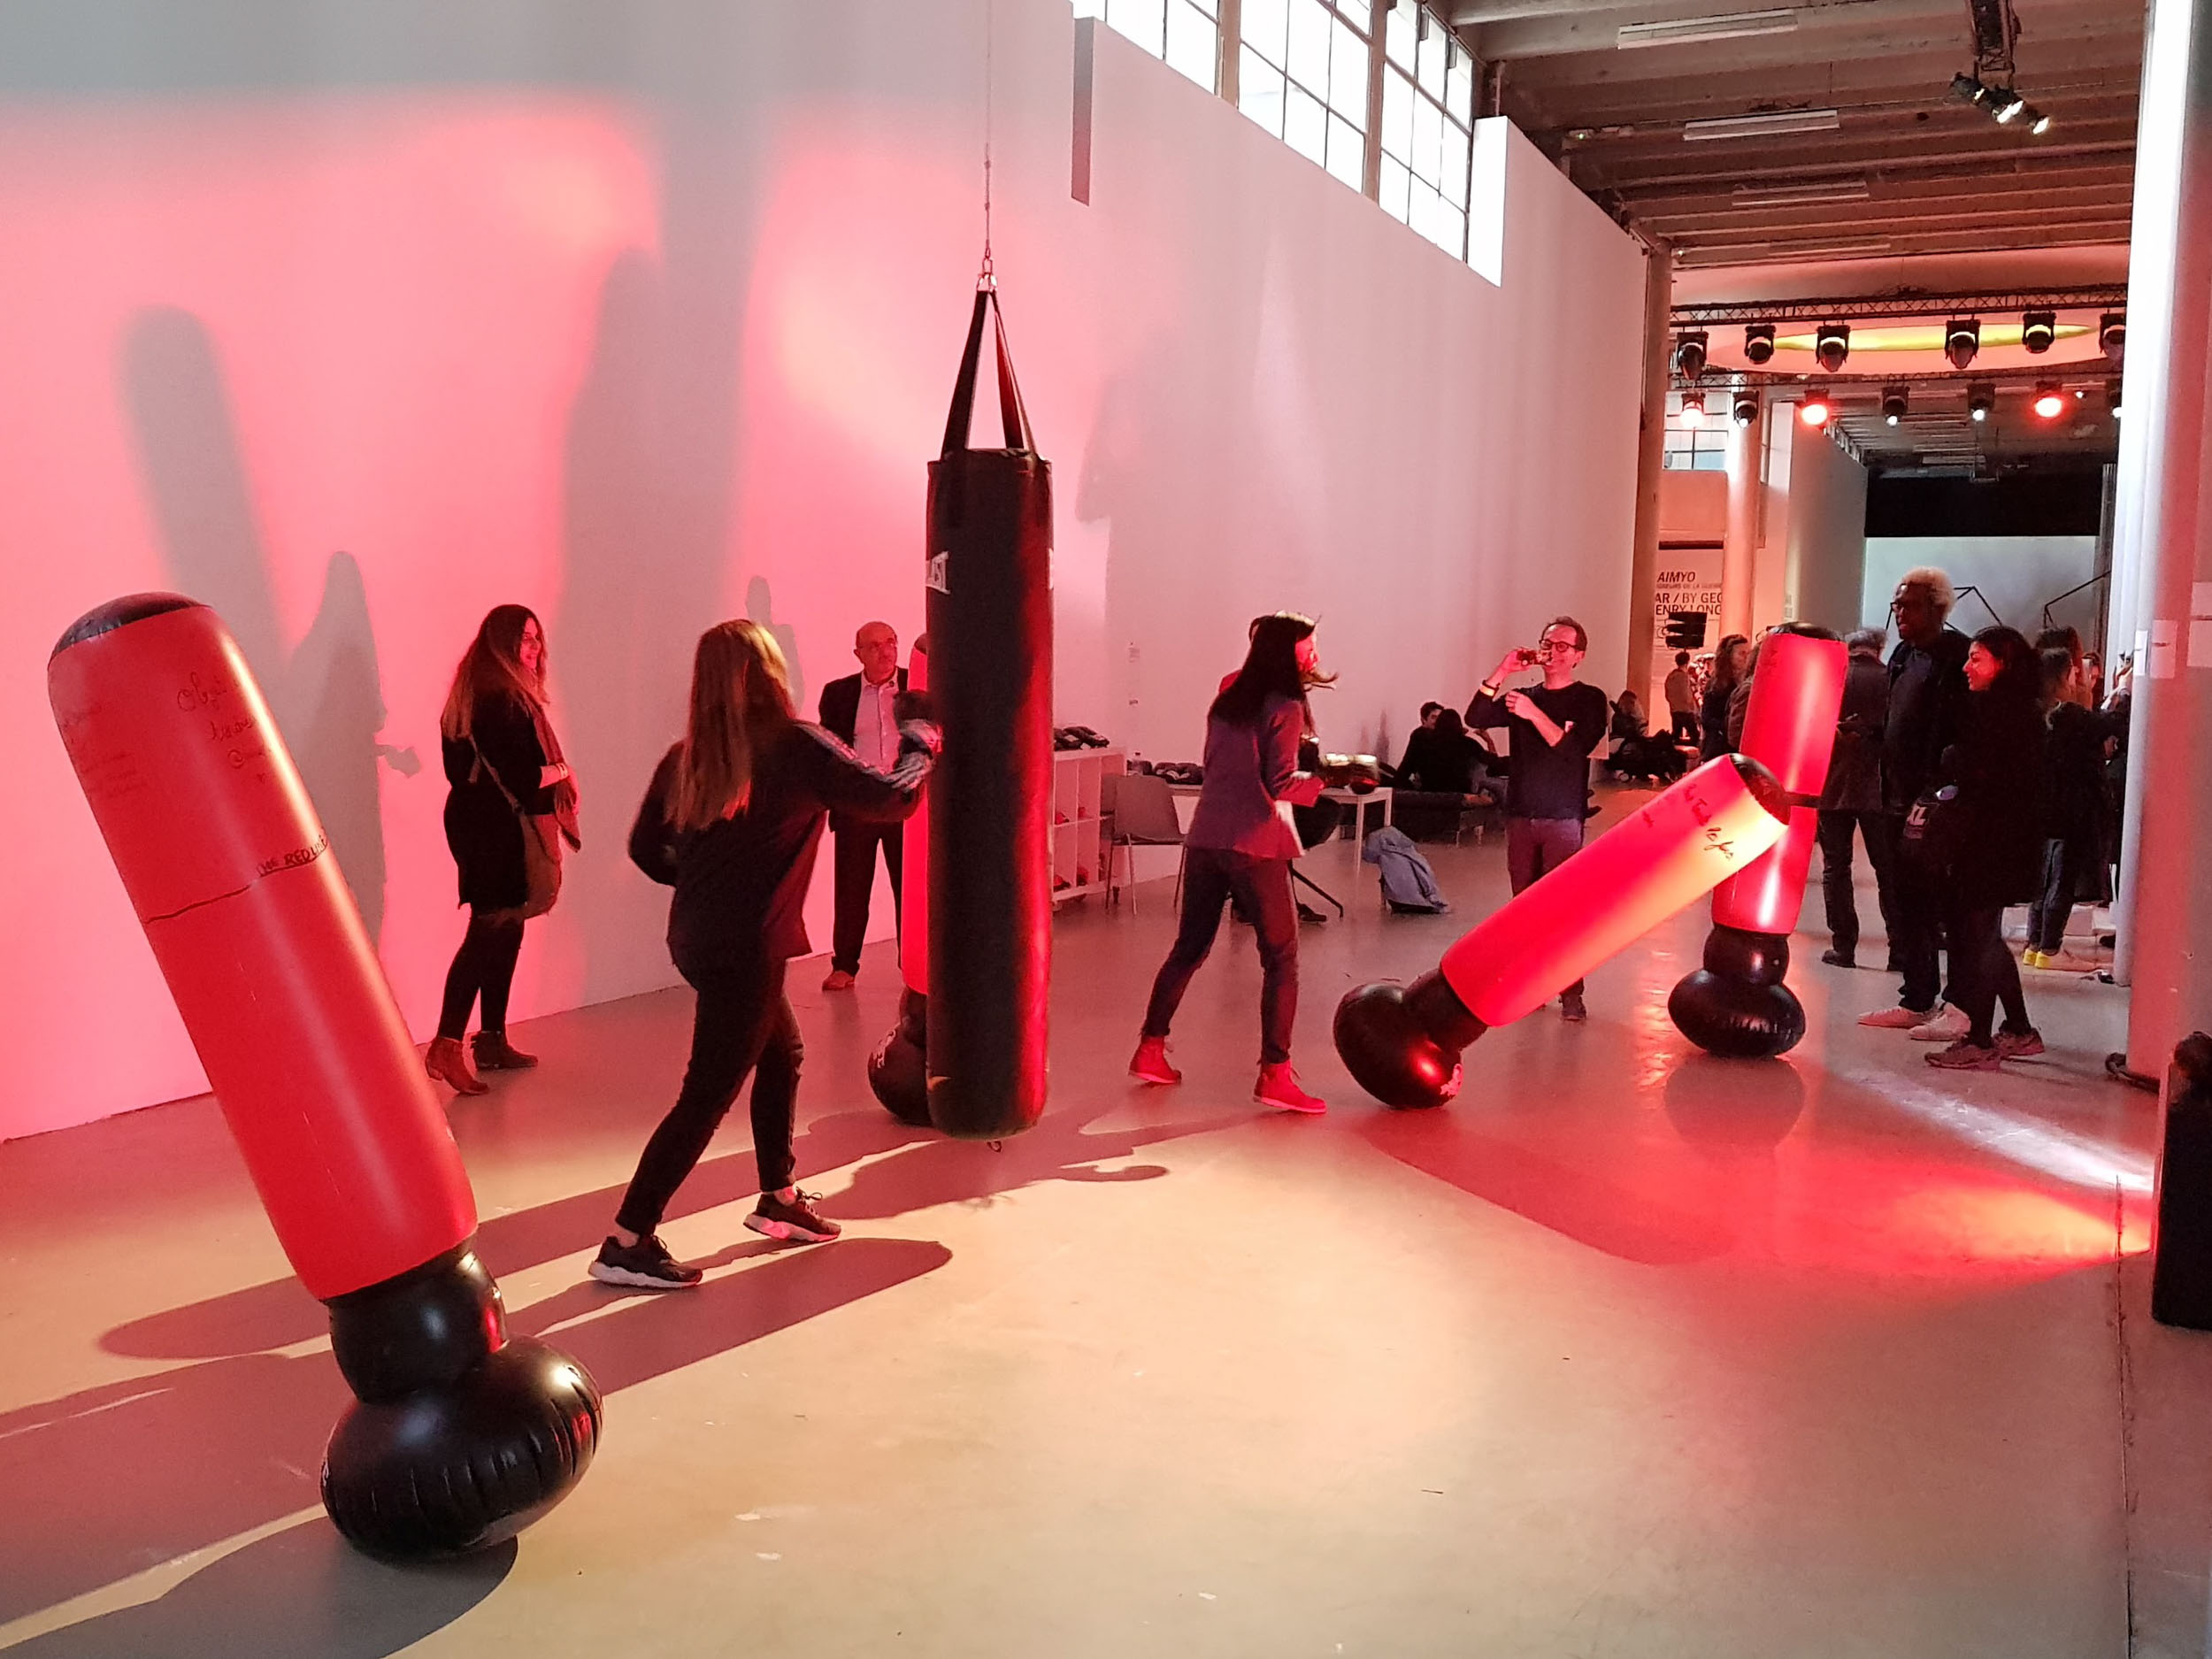 All photos from Do Disturb festival, Palais de Tokyo, Paris.     #MMF  , 2018   #MMF  is a performative and participative installation reflecting on the #metoo movement.  Its title is a compound of MLF (Mouvement de Libération des Femmes, the main French feminist movement of the 1970s) and MMA (Mixed Martial Arts).  A space is delineated by the installation of punching bags.  Boxing gloves and markers are provided to female visitors.  (click Next to continue)